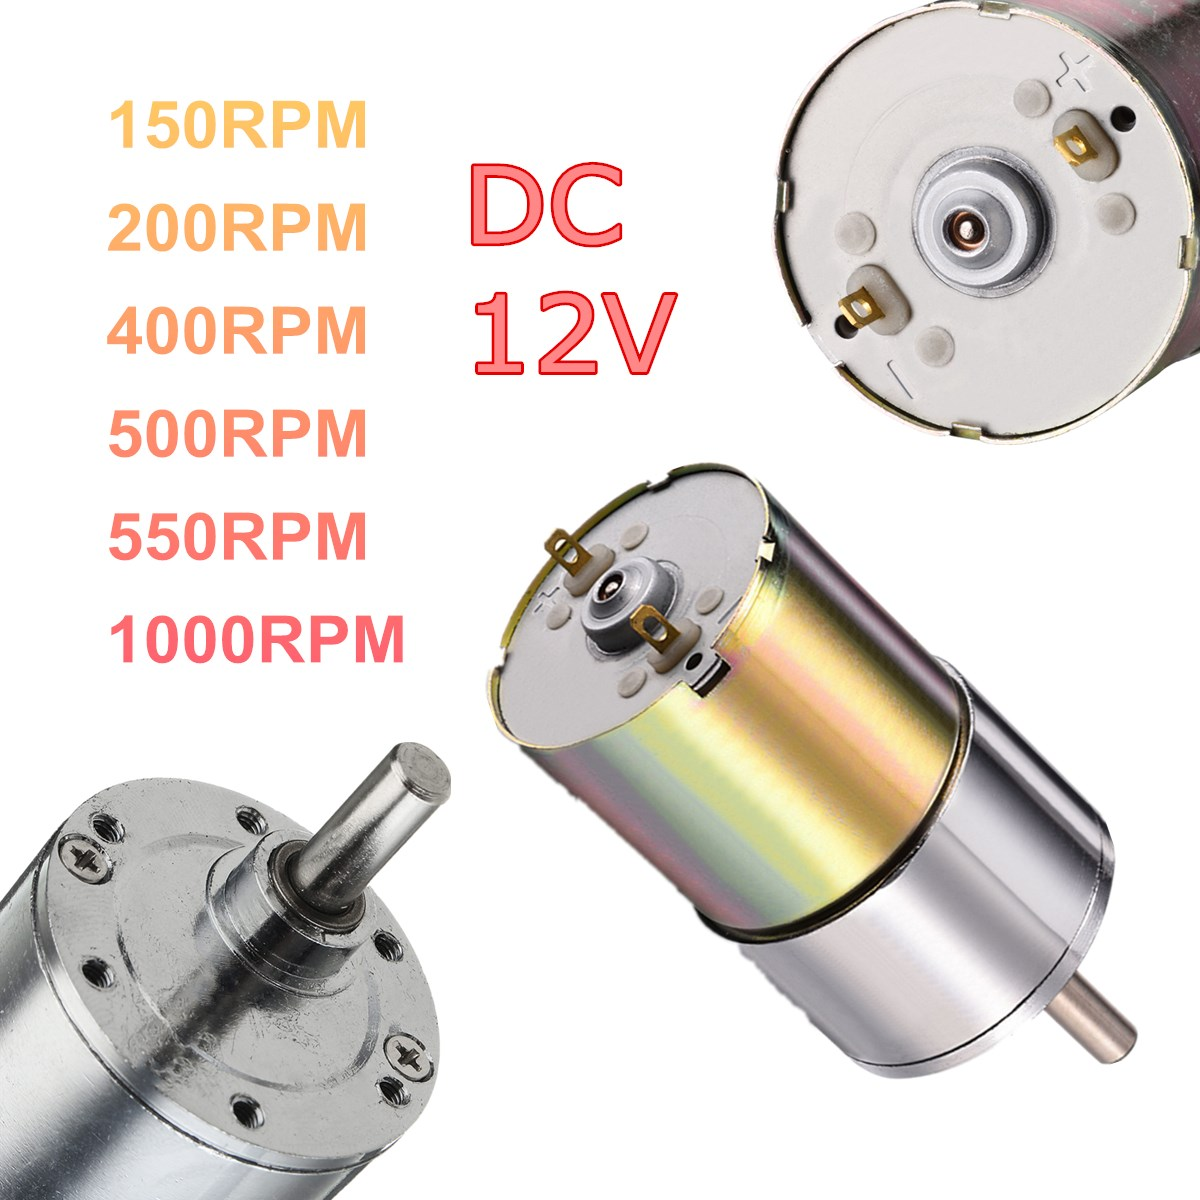 цена на DC 12V 150/200/400/500/550/1000 RPM Powerful High Torque Electric Gear Box Motor Speed Reduction